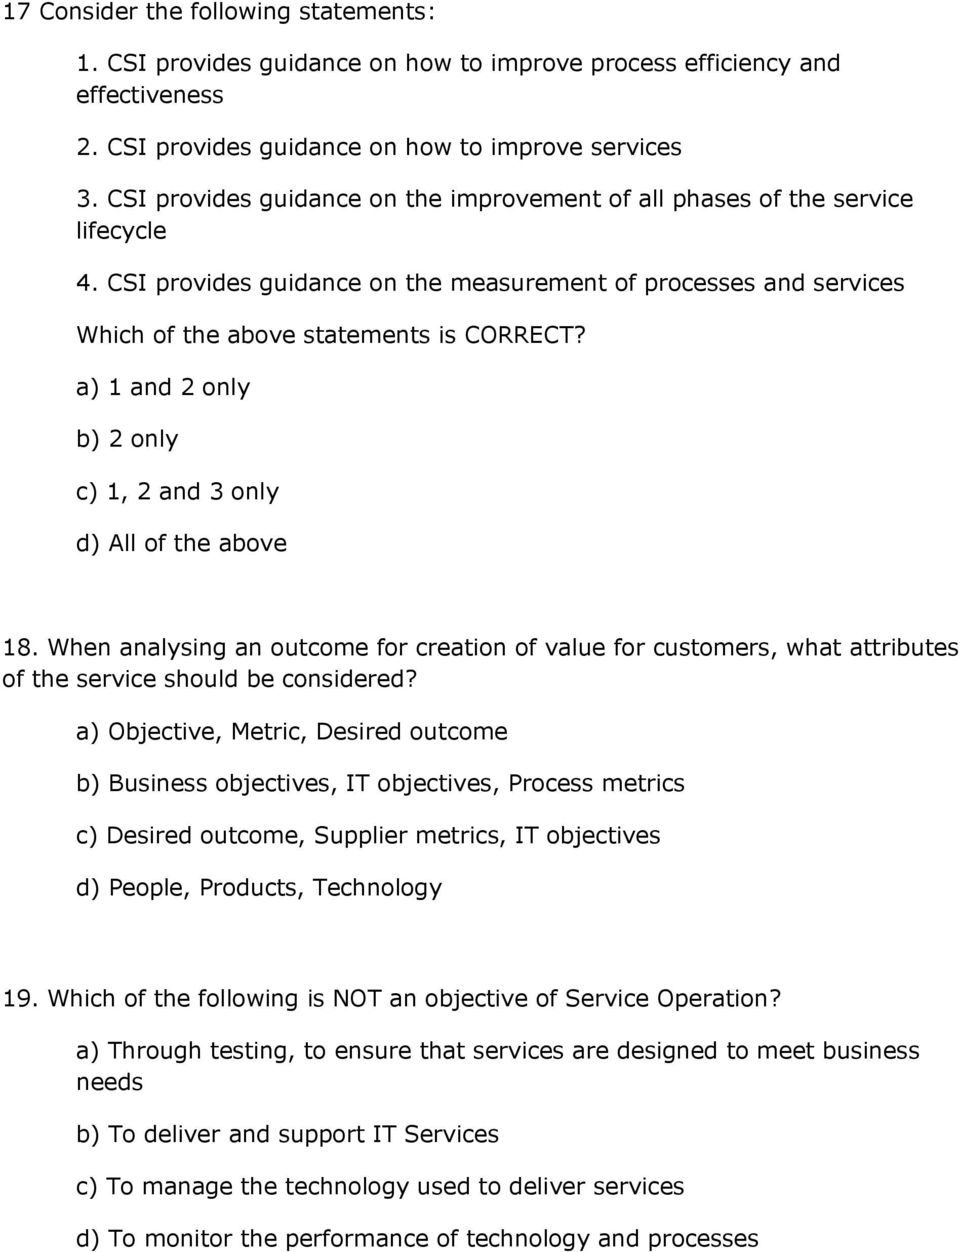 a) 1 and 2 only b) 2 only c) 1, 2 and 3 only d) All of the above 18. When analysing an outcome for creation of value for customers, what attributes of the service should be considered?